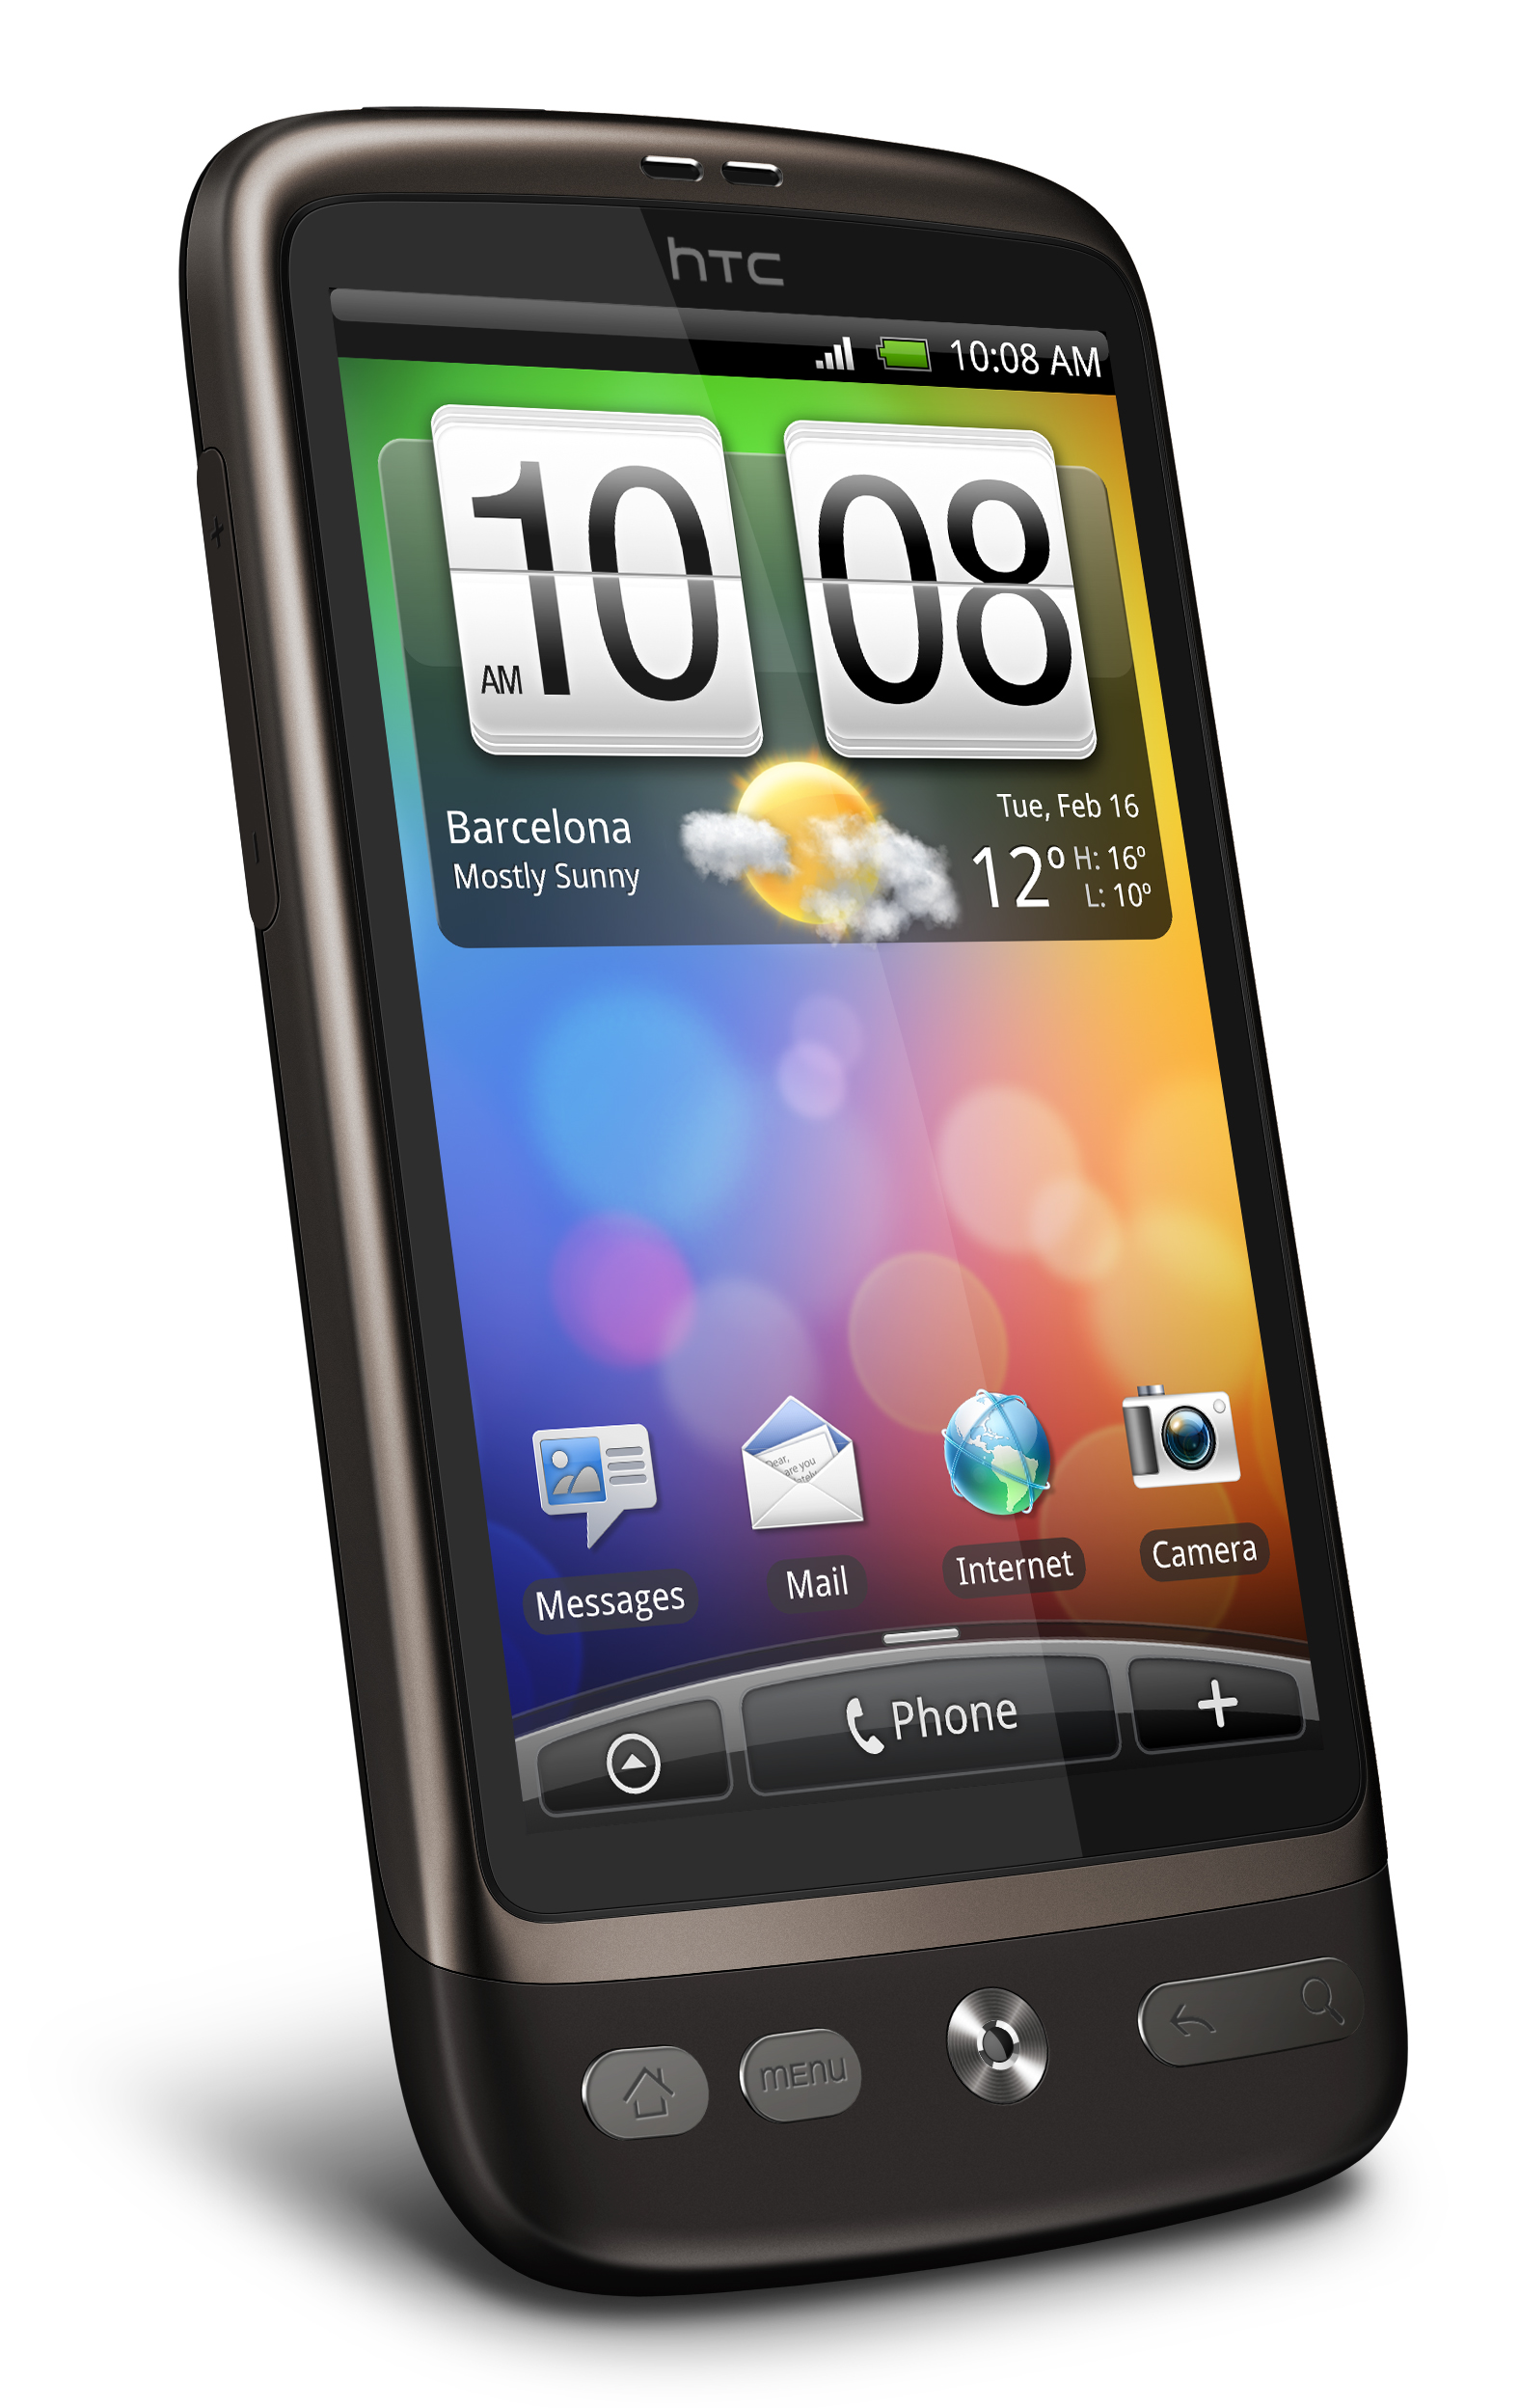 Phone Htc Desire Android Phones big beautiful brawny htc desire review icrontic slant